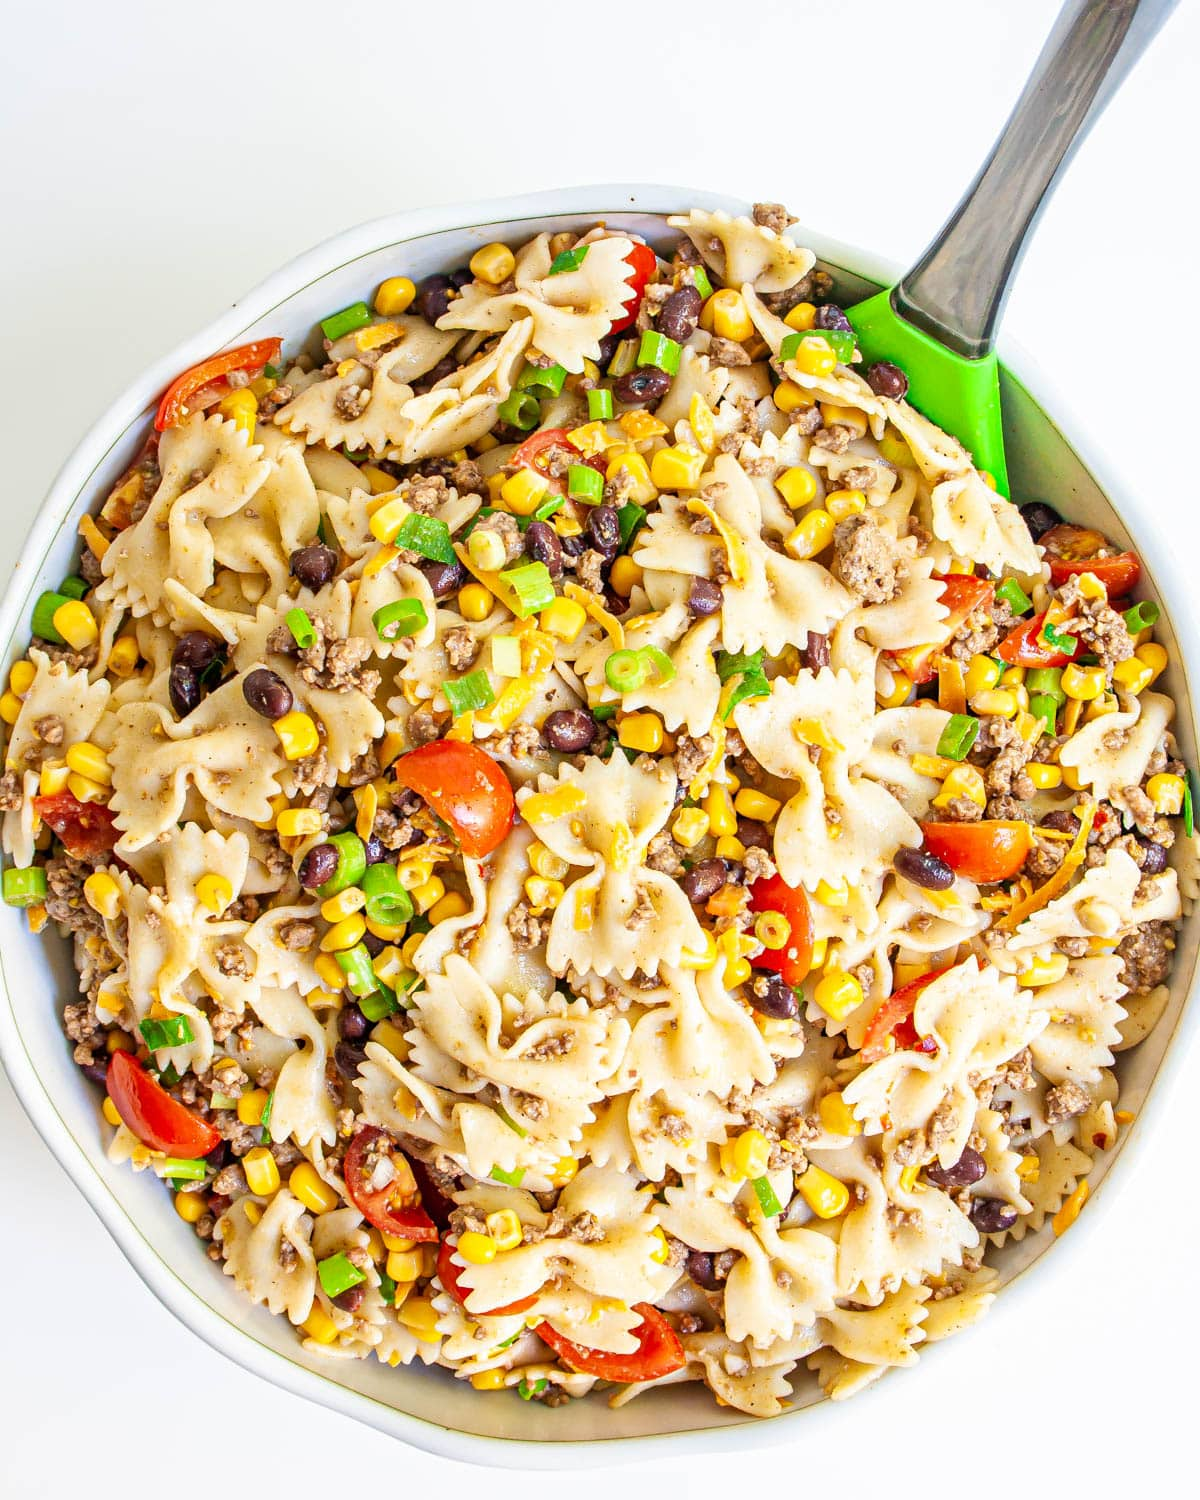 Cowboy Pasta Salad in a white bowl